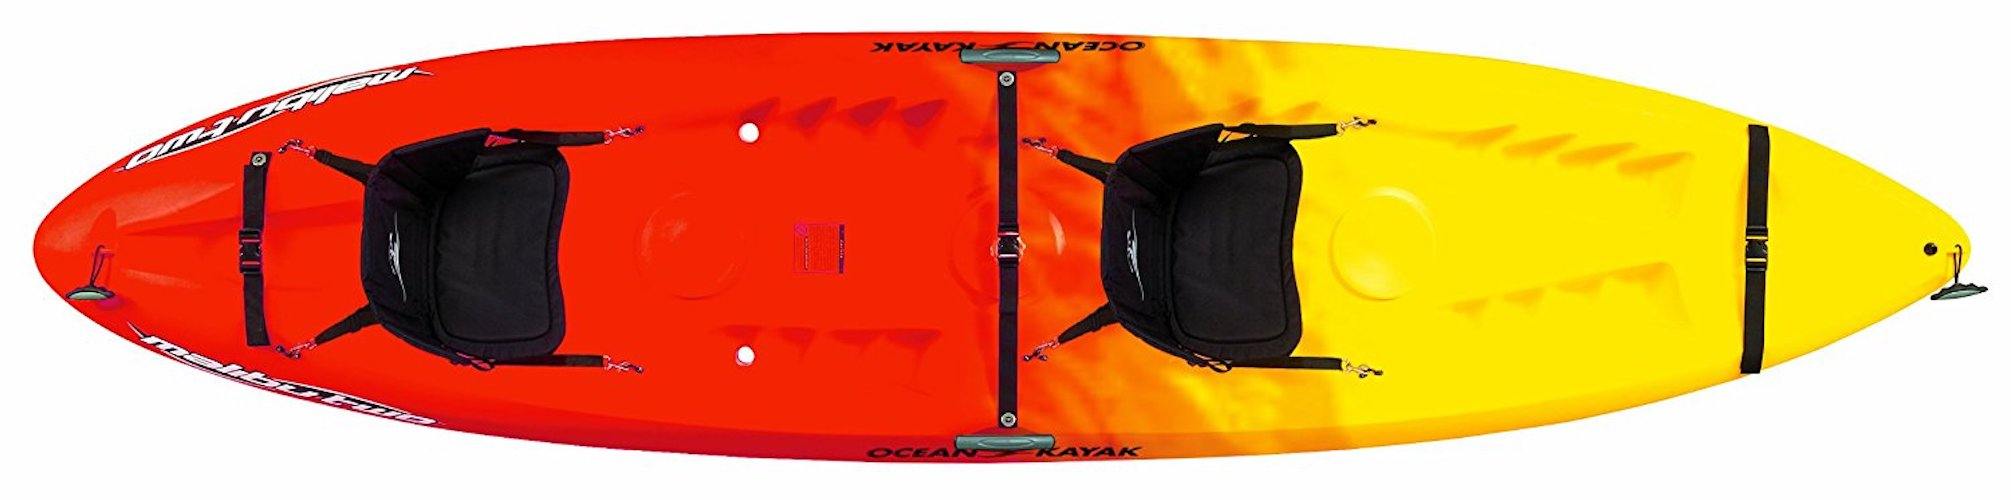 4. Ocean Kayak 12-Feet Malibu Two Tandem Sit-On-Top Recreational Kayak